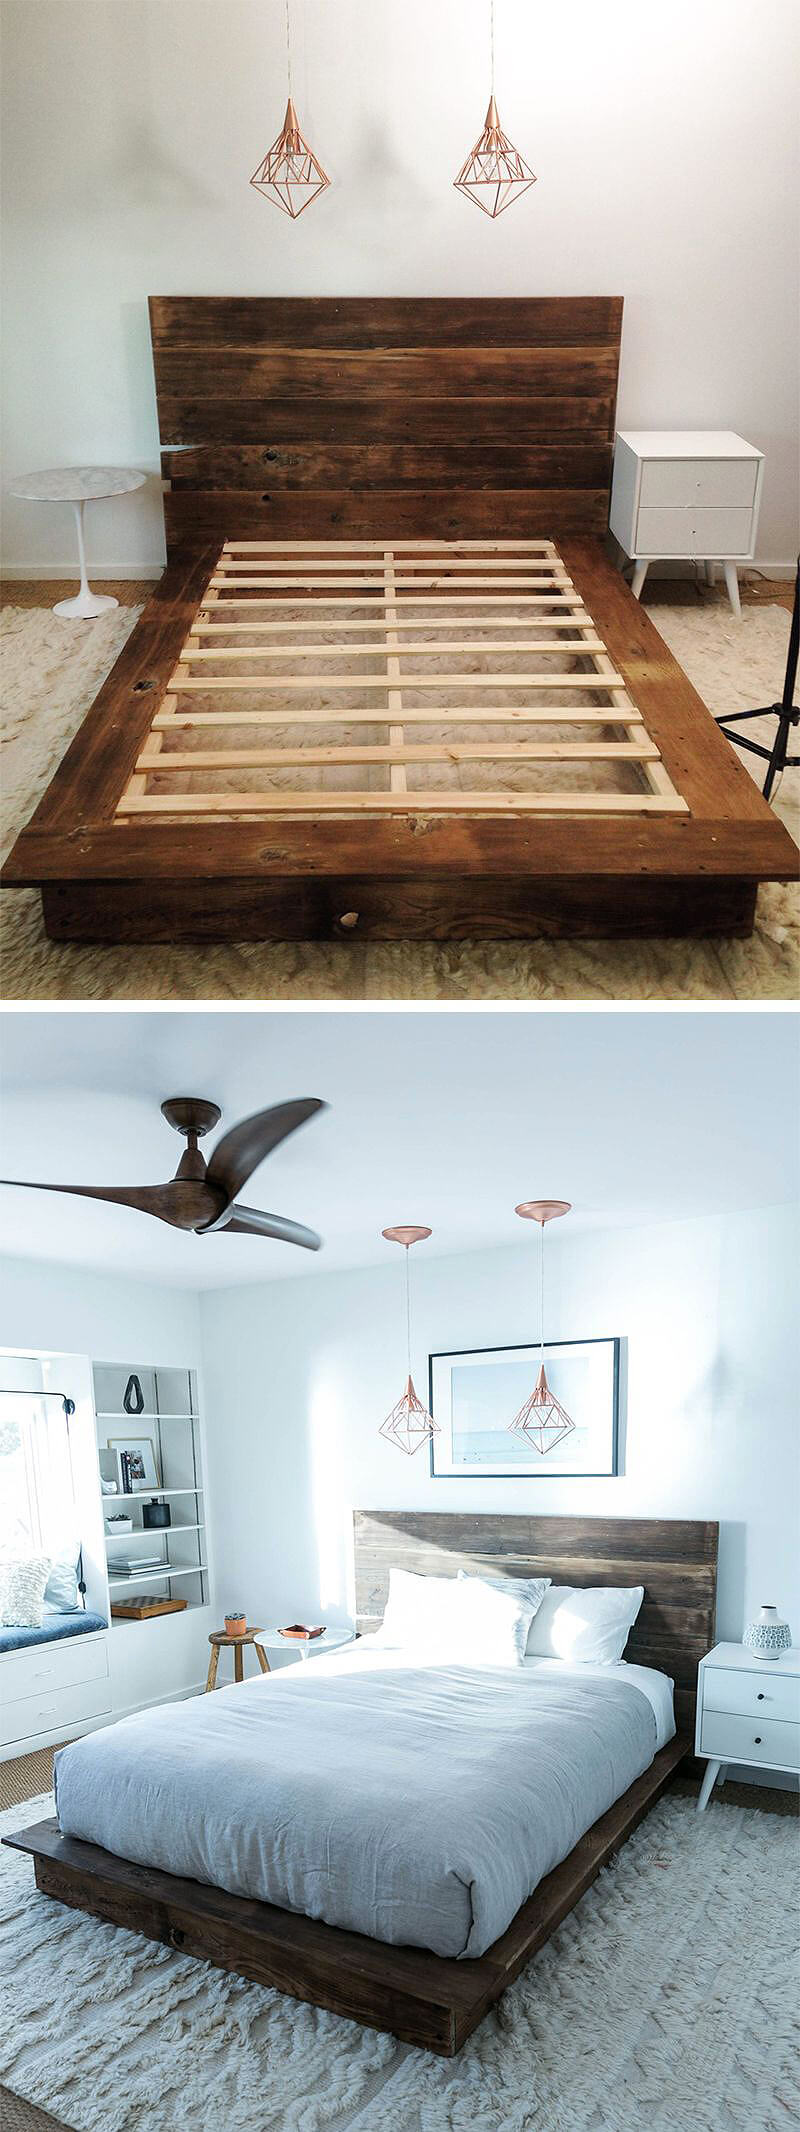 34 Diy Reclaimed Wood Projects Ideas And Designs For 2021